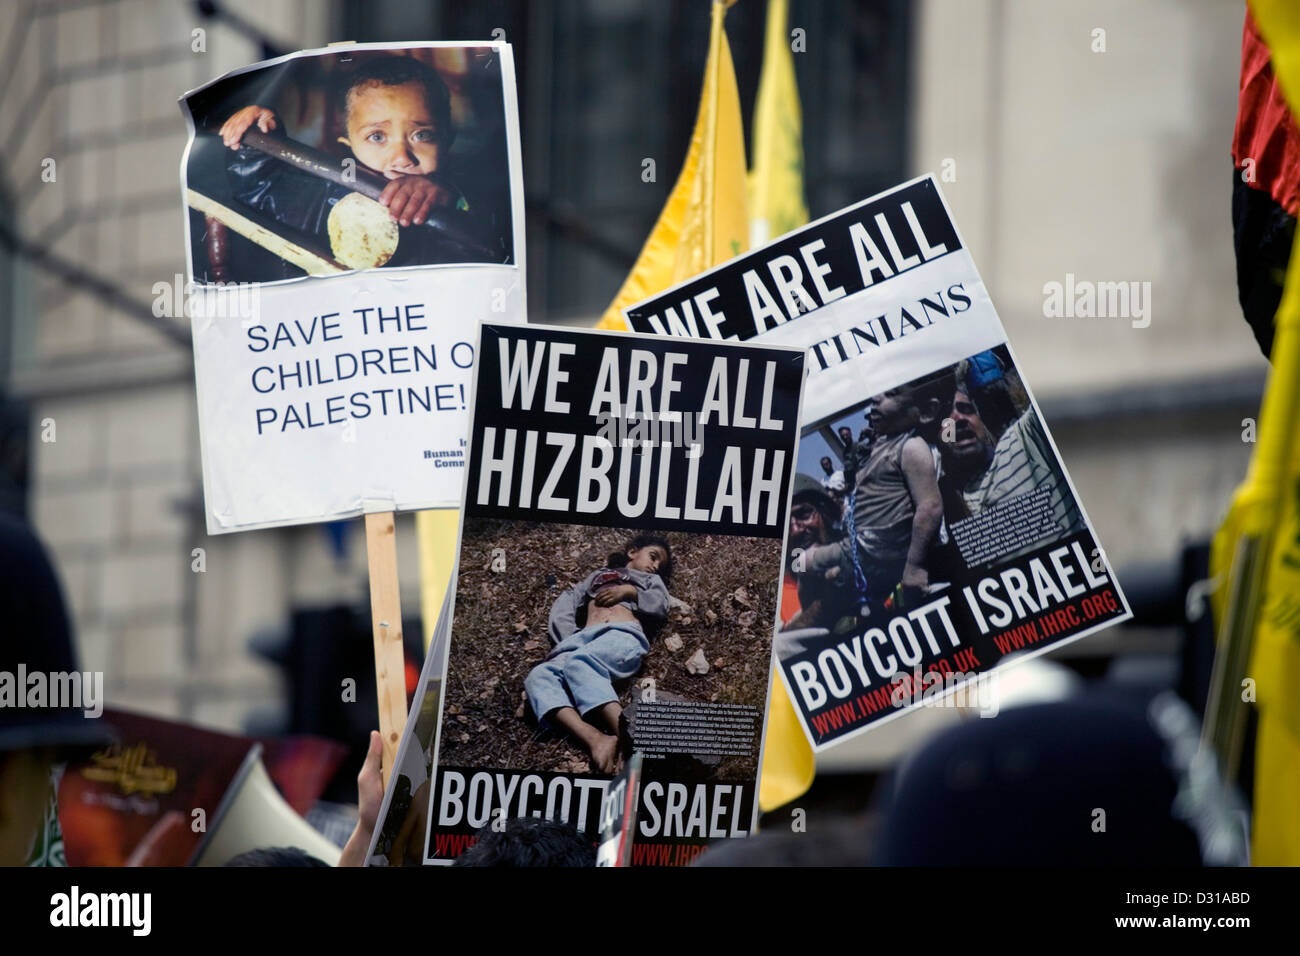 Photographs taken at an anti-Israel protest in London. - Stock Image